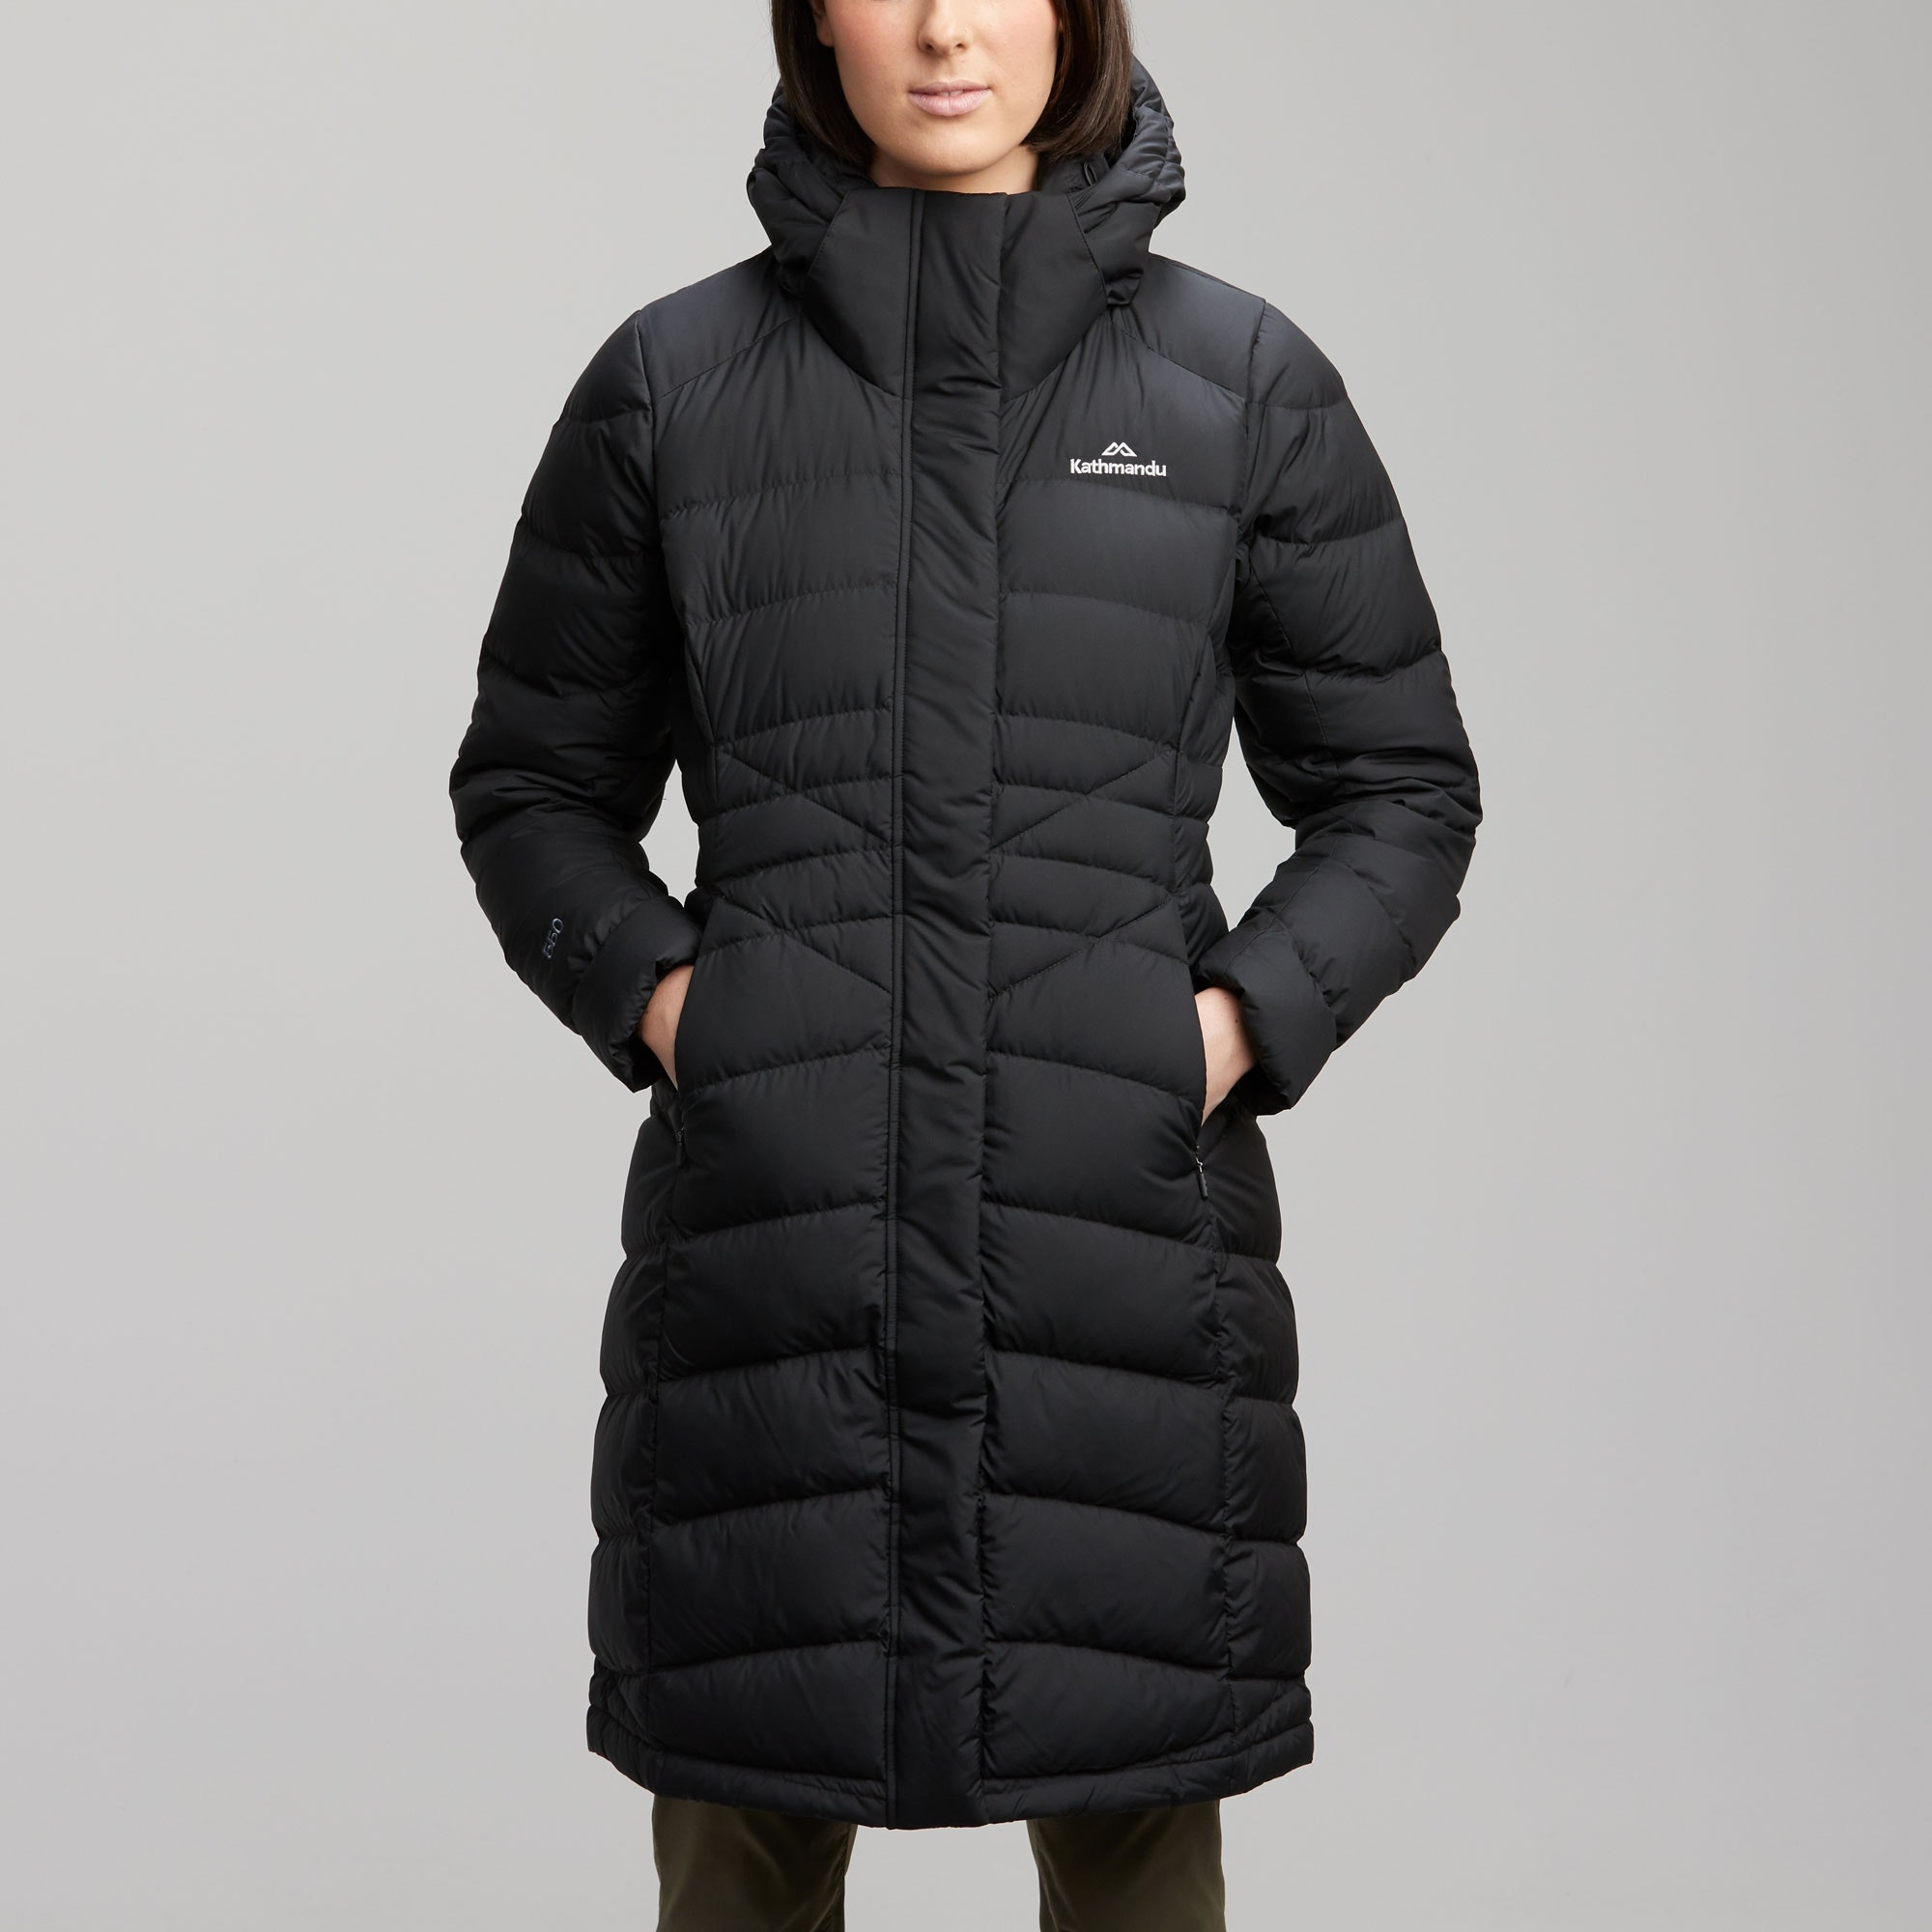 To acquire Puffer Women down jackets pictures trends